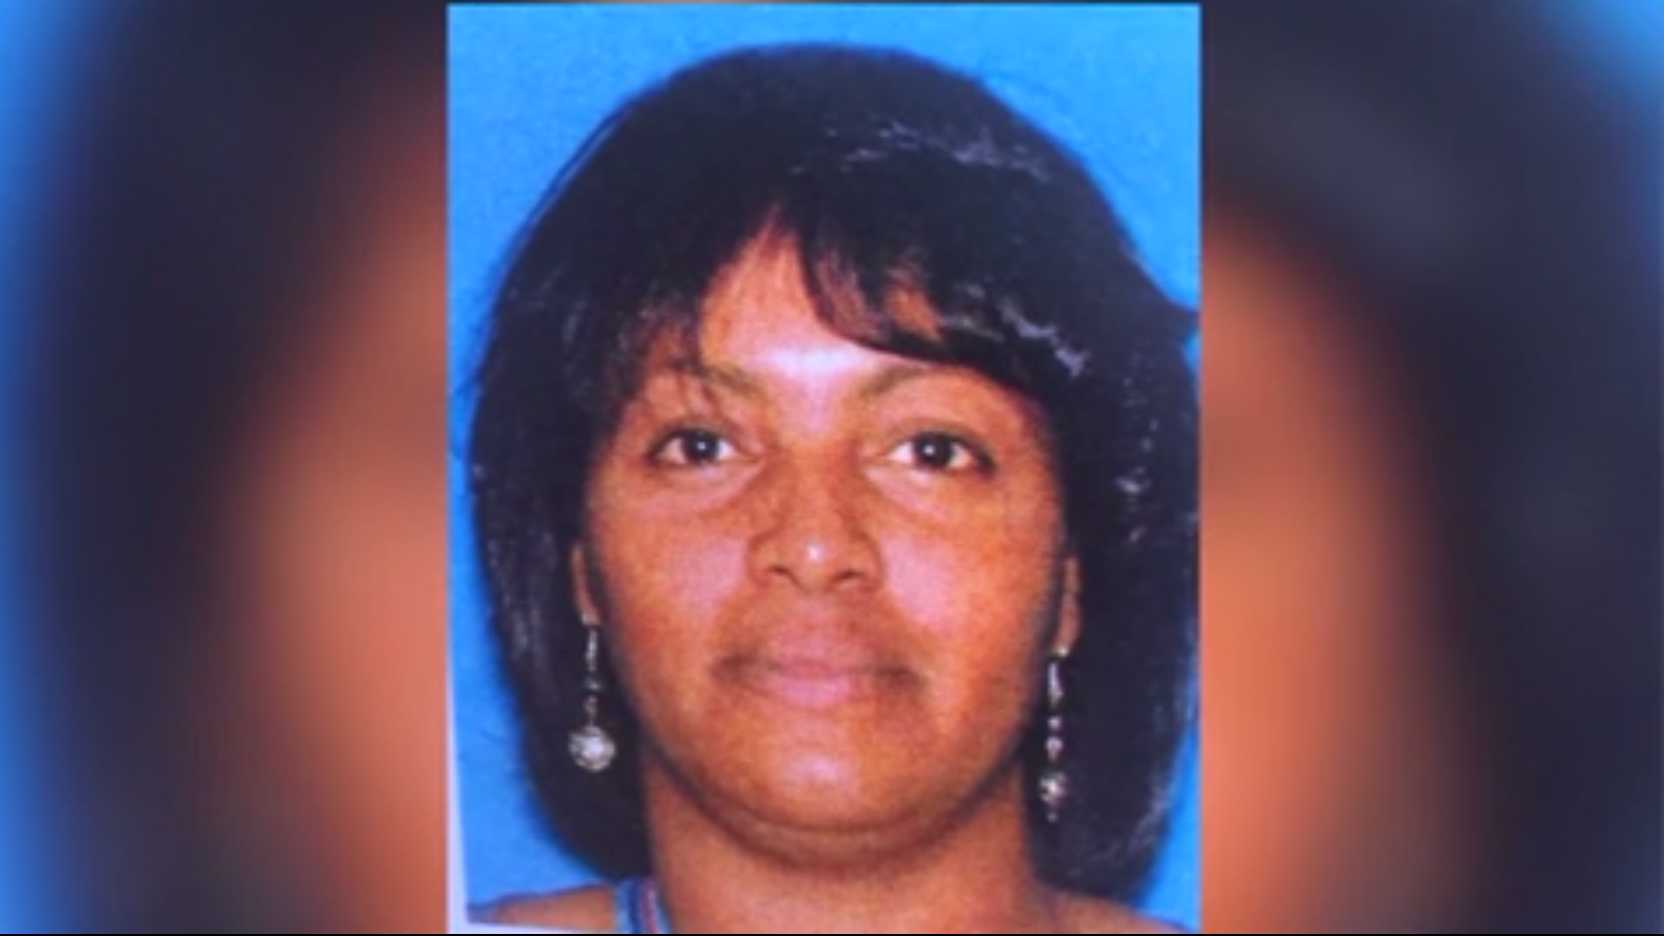 Nicole Darrington-Clark, 43, was arrested Tuesday, June 6, 2017, in connection to the stabbing death of her 1-year-old granddaughter, the Colton Police Department said.